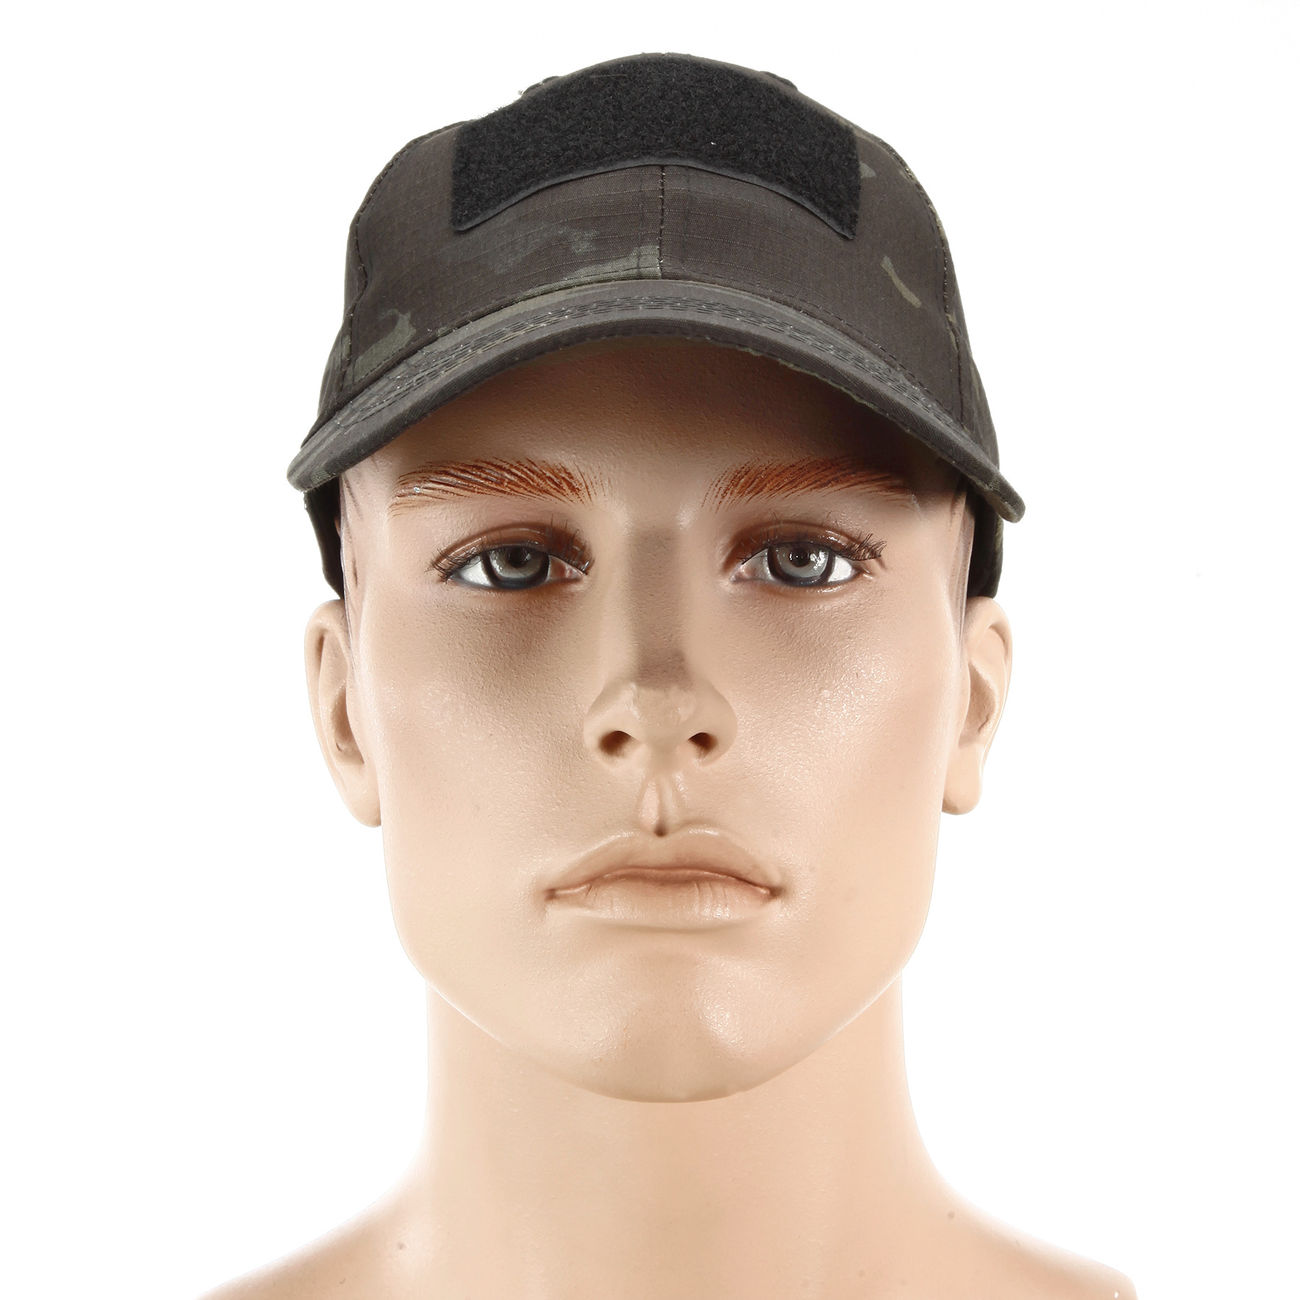 Mil-Tec Tactical Baseball Cap Multitarn Black 1